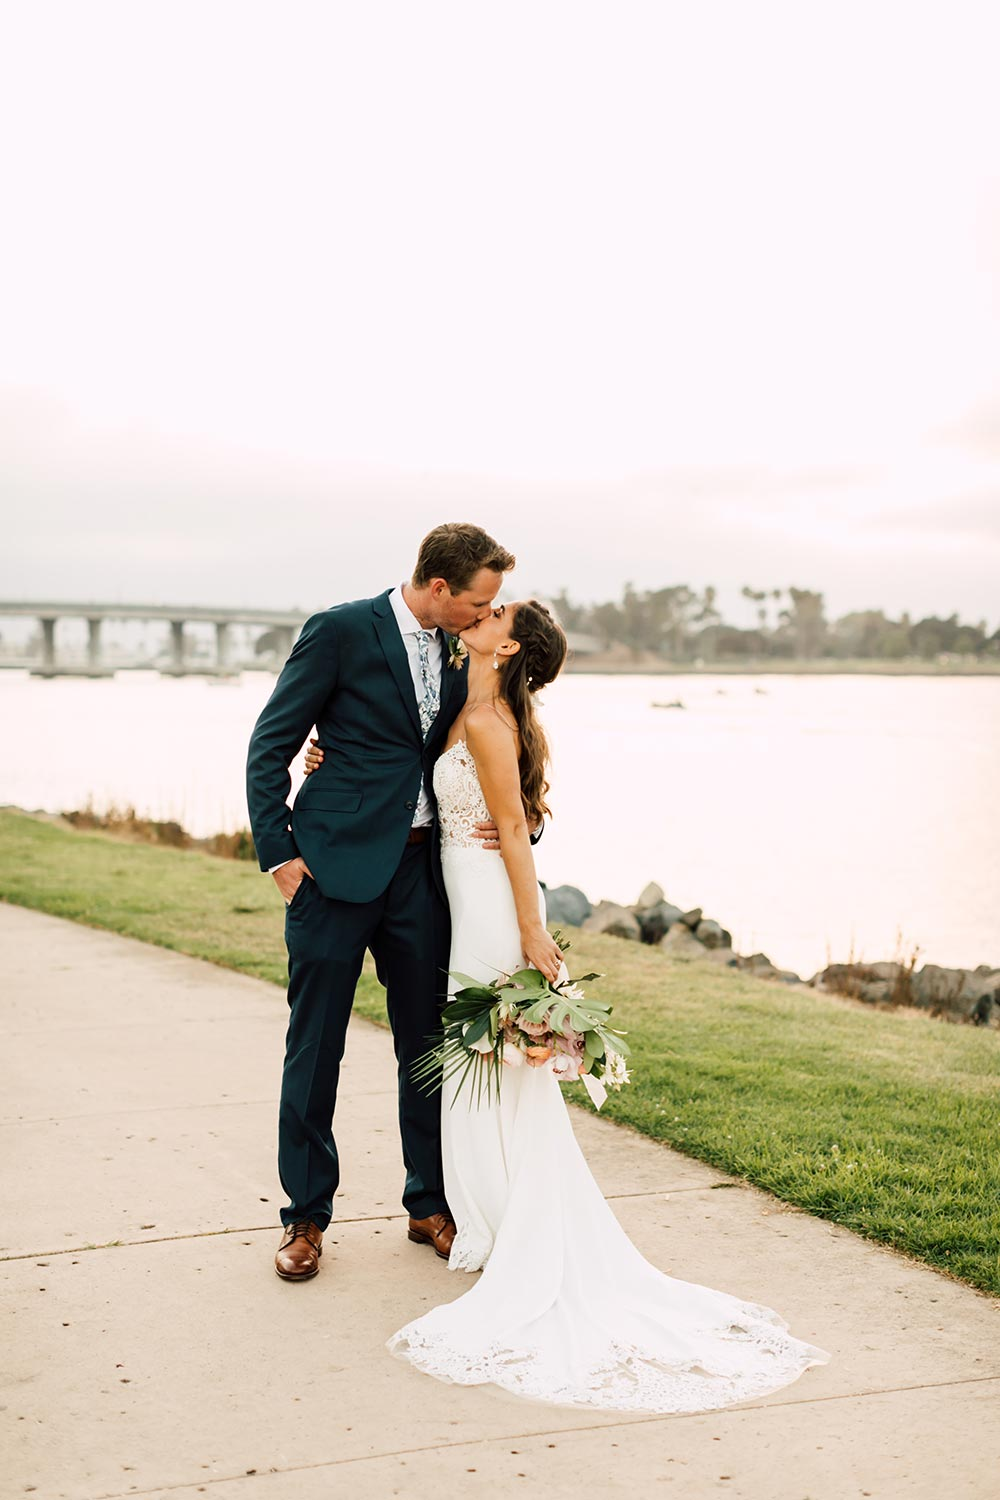 embroidered spaghetti strap wedding dress with navy groom suit and printed floral tie kiss